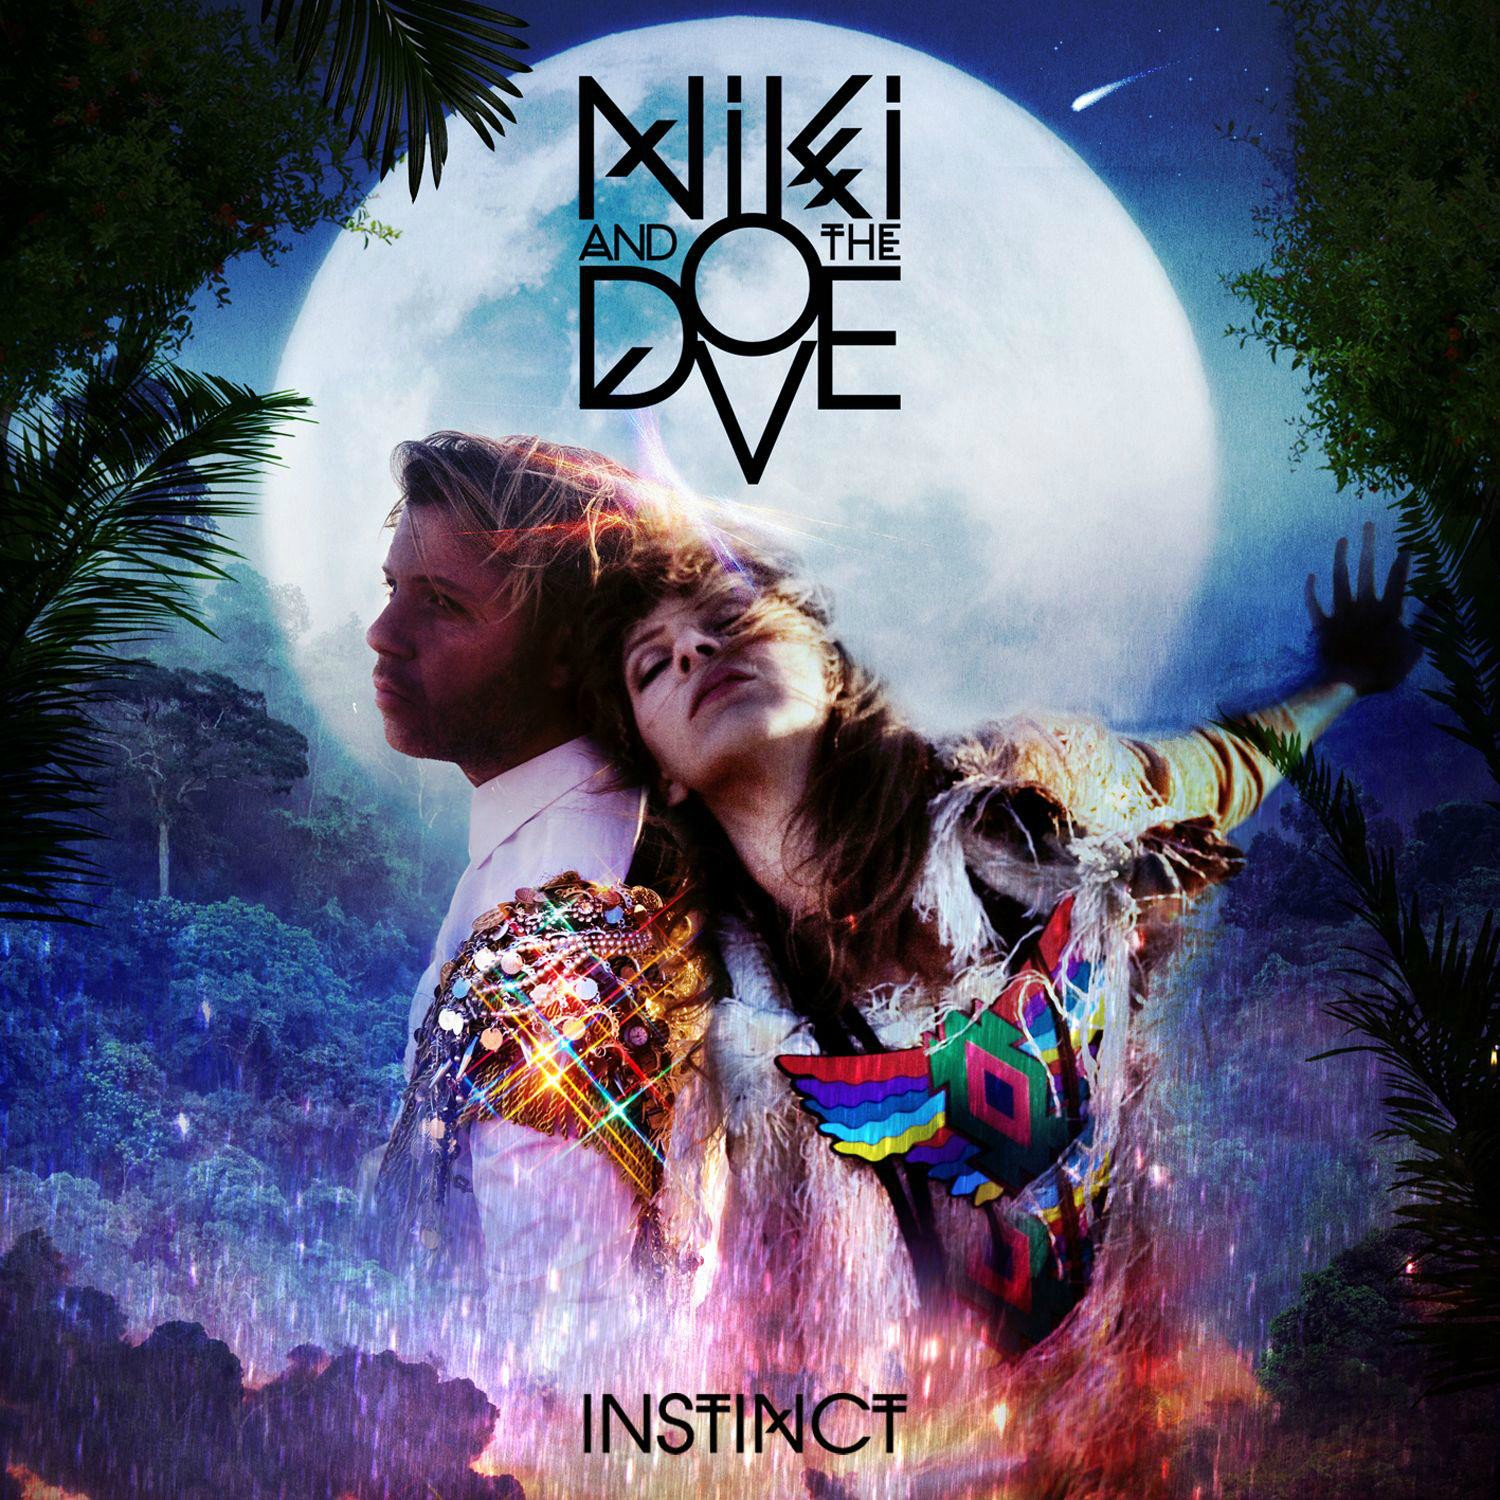 Niki and the Dove - Instinct